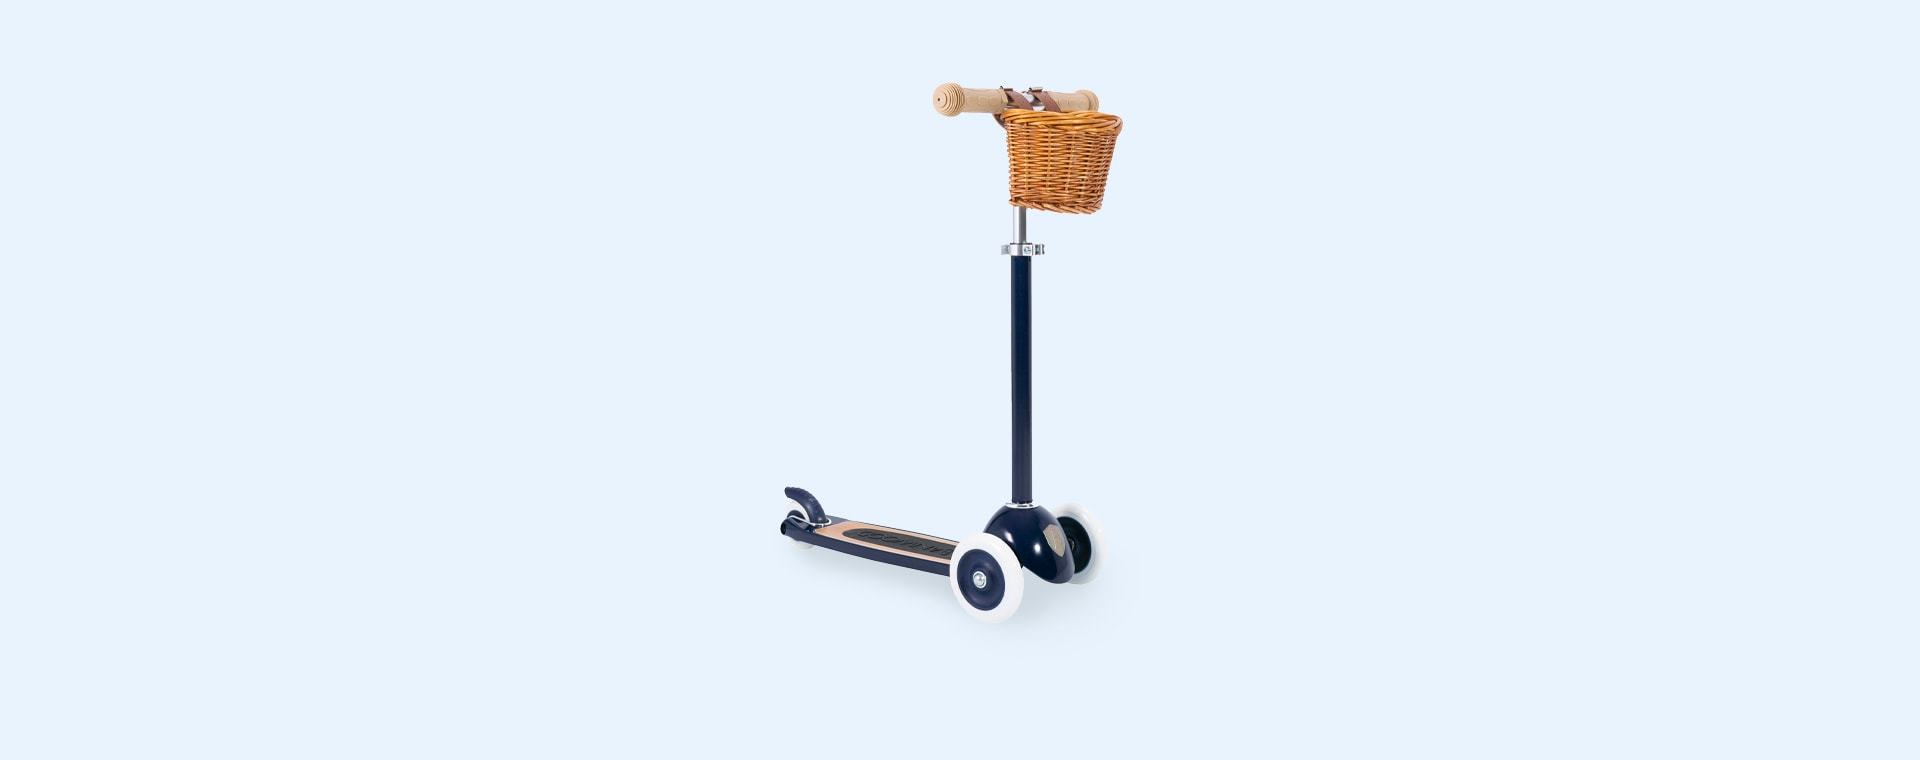 Navy Banwood Scooter